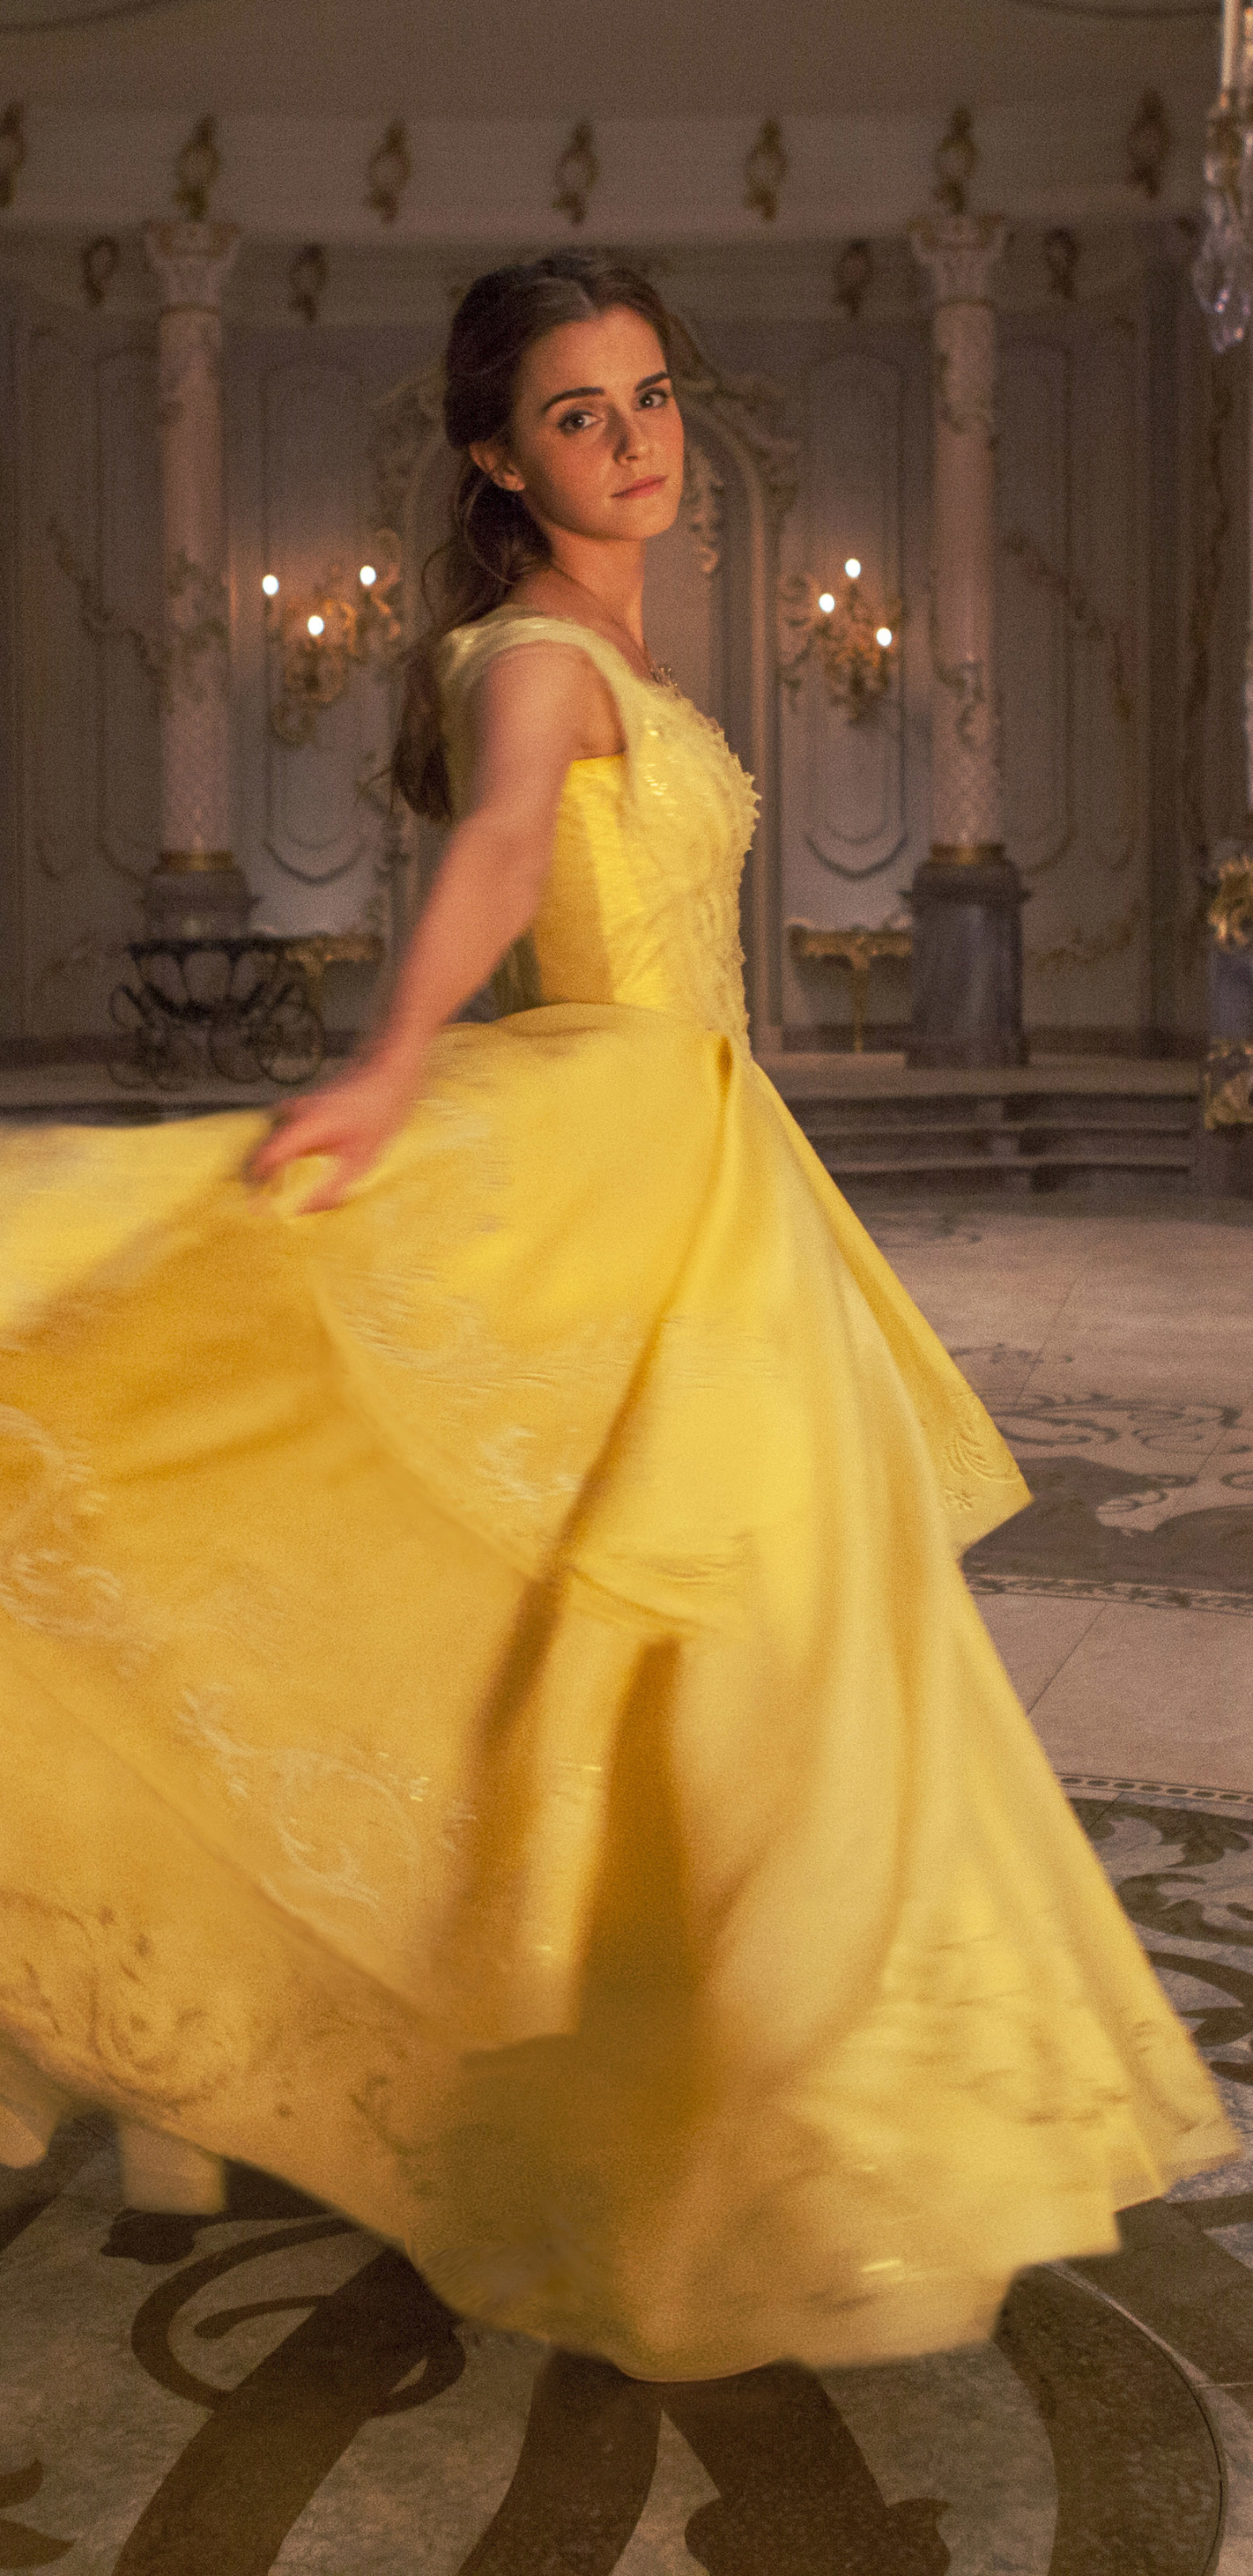 Movie Beauty And The Beast 2017 1440x2960 Wallpaper Id 715772